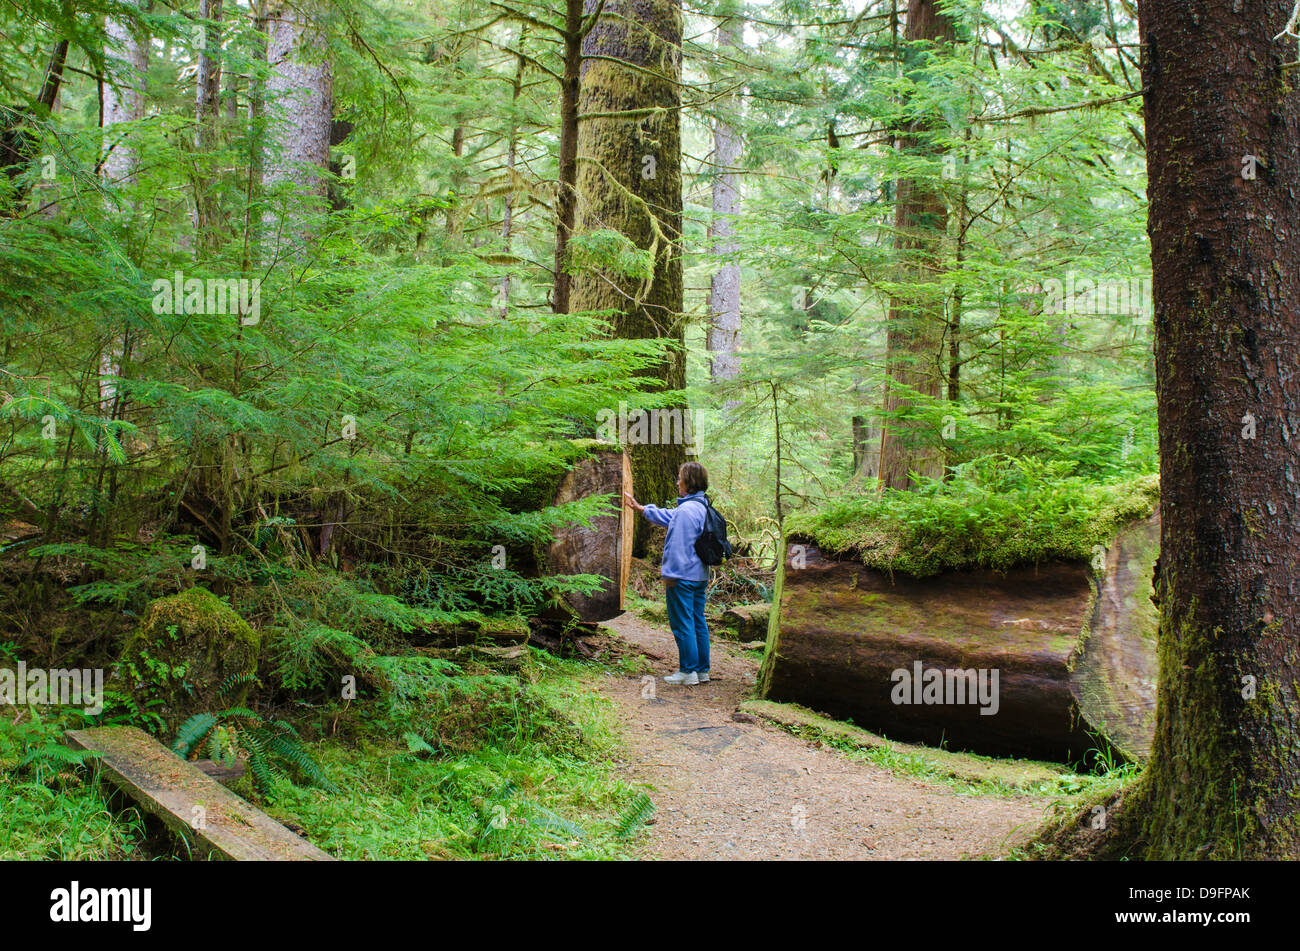 Hiking in Naikoon Provincial Park, Haida Gwaii (Queen Charlotte Islands), British Columbia, Canada - Stock Image